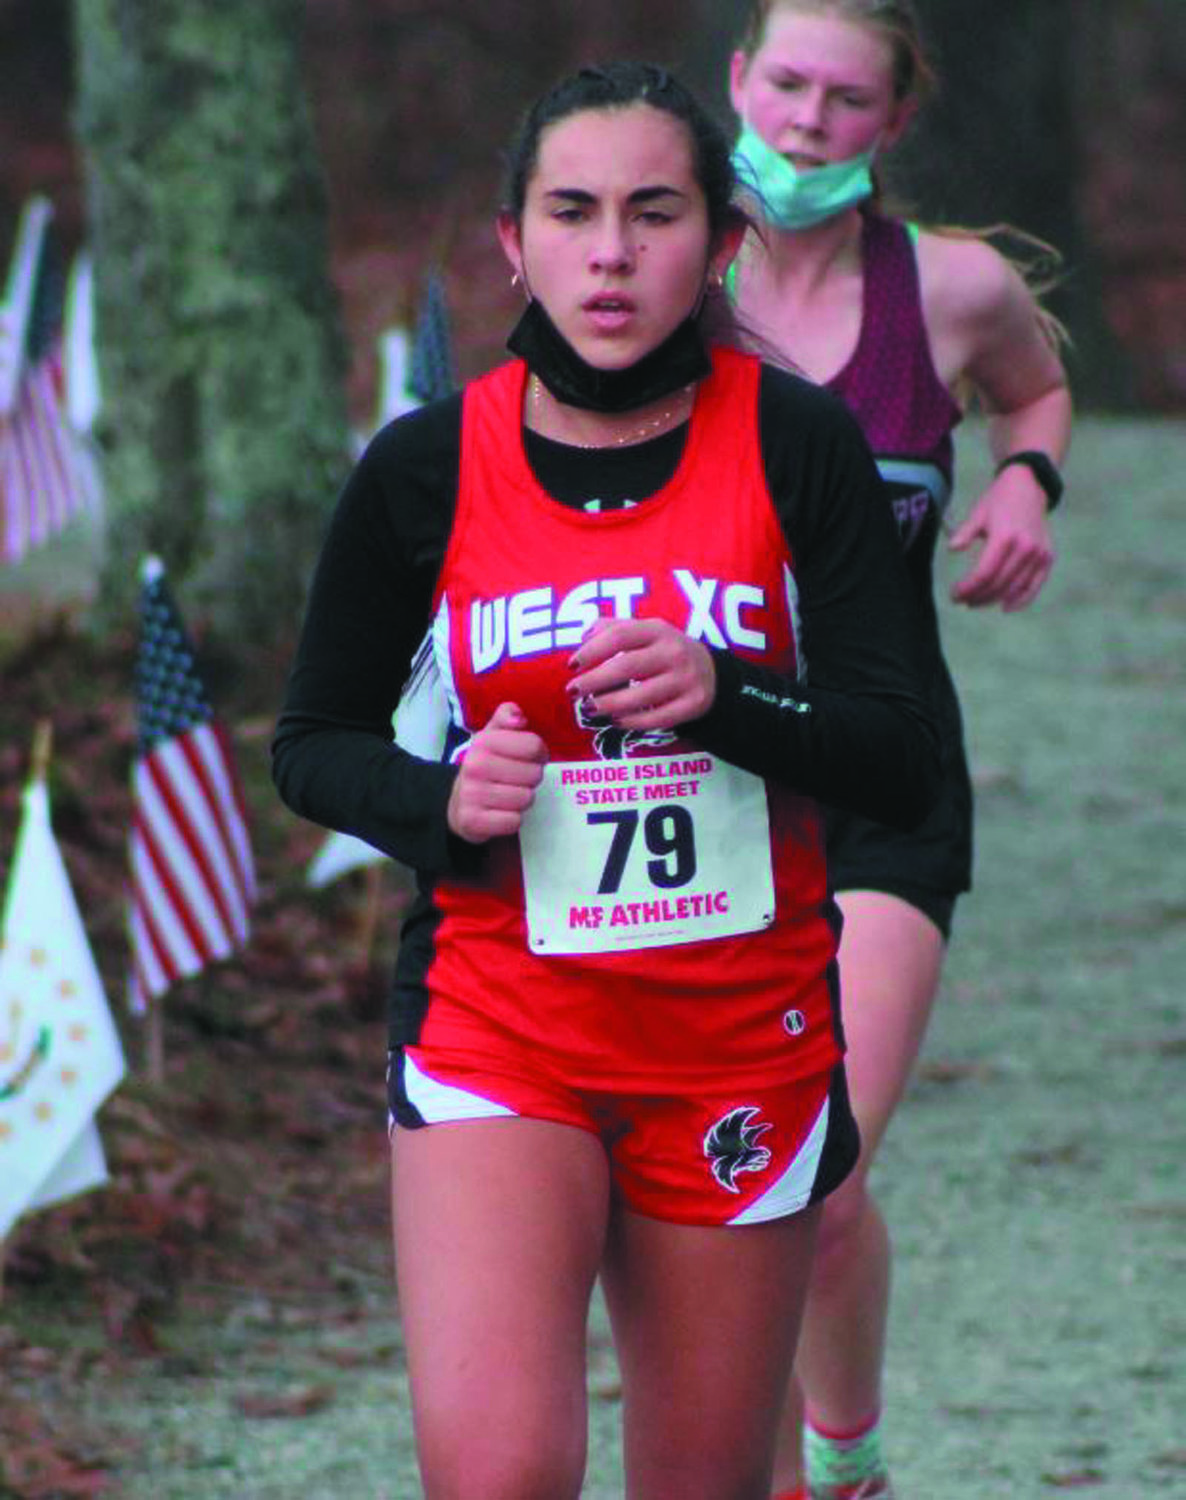 ON THE RUN: Cranston West's Catherine Consiglio